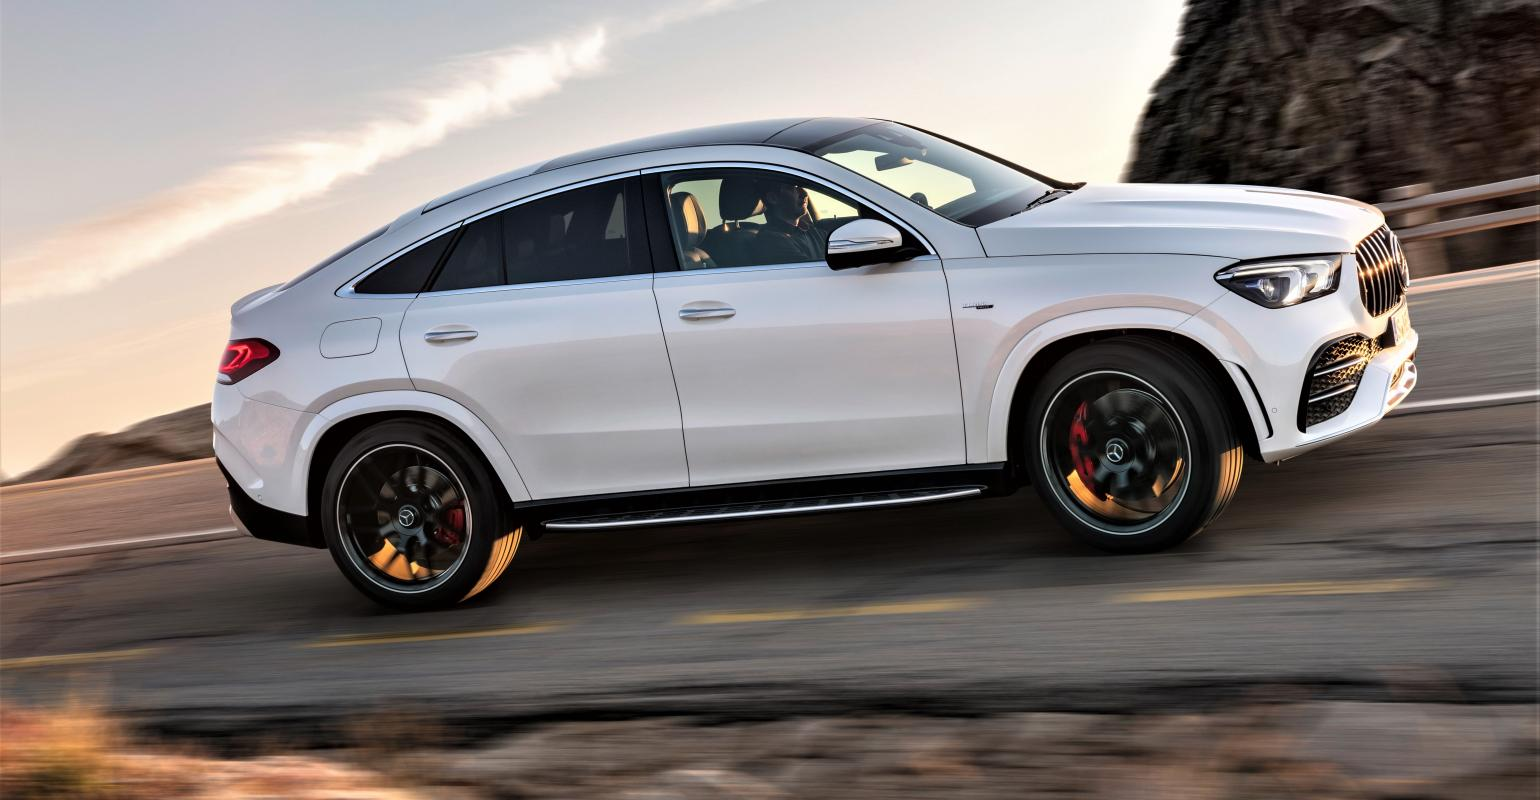 New Mercedes Benz >> Covers Come Off New Mercedes Benz Gle Coupe Wardsauto